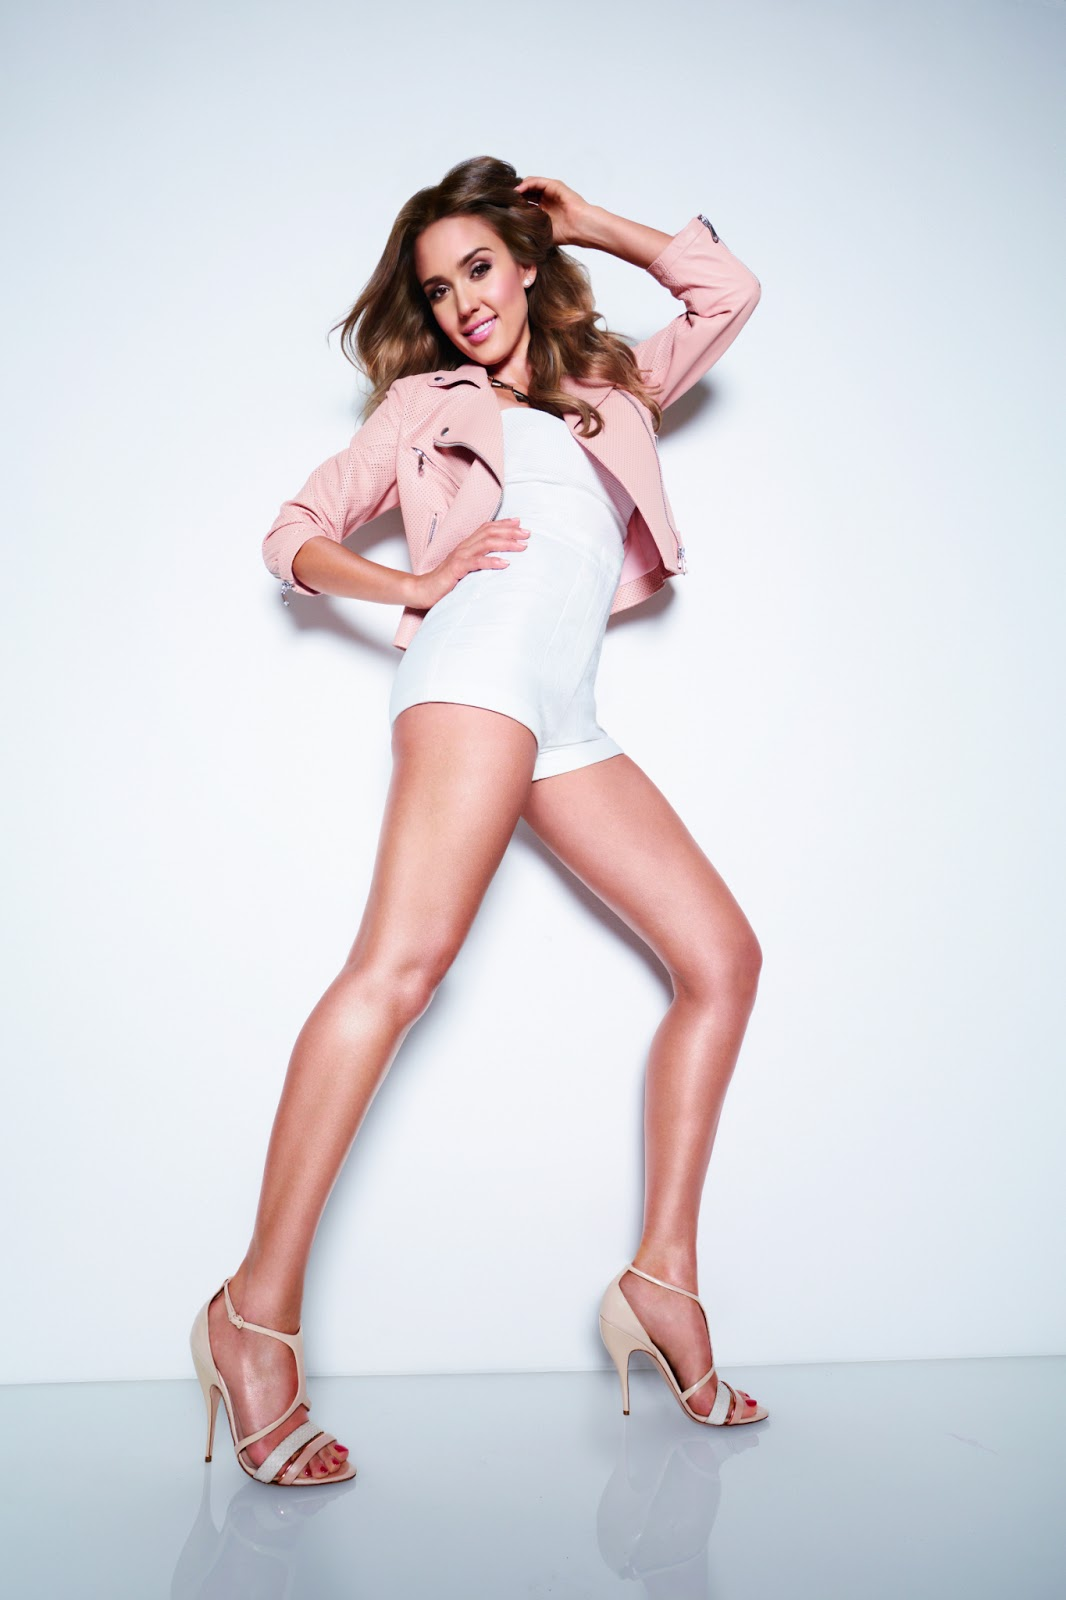 Jessica Alba shows off skin for the Braun Silk-epil 2015 Campaign